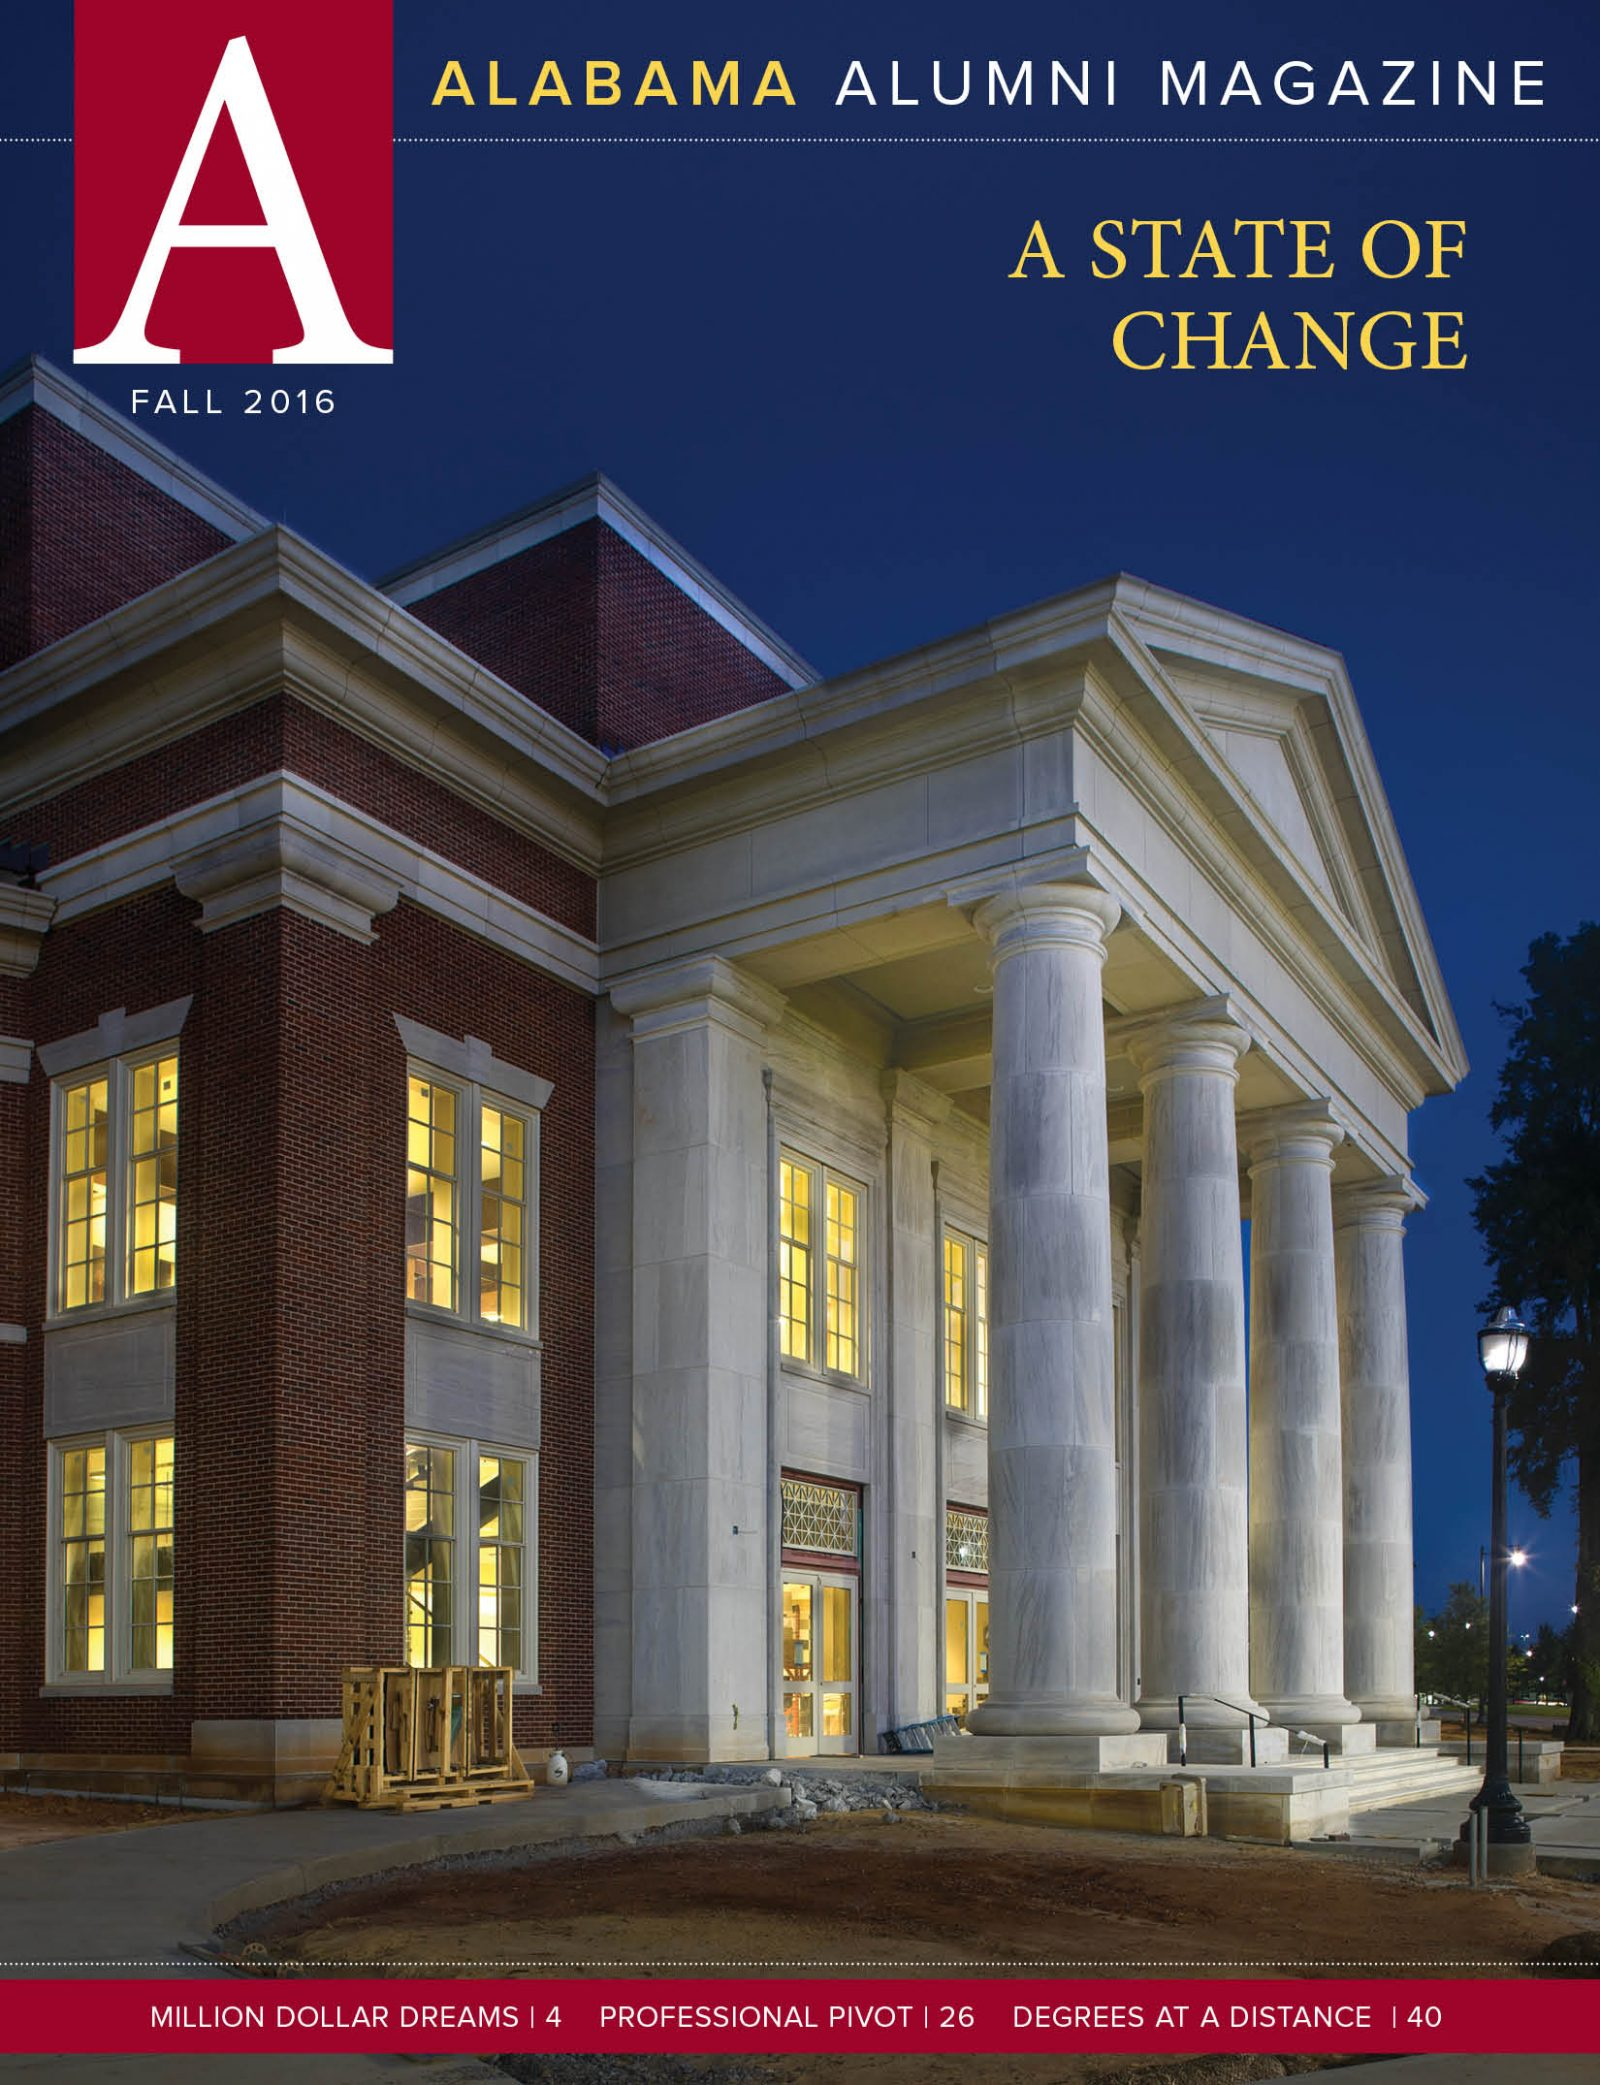 Alumni Magazine Issue Cover